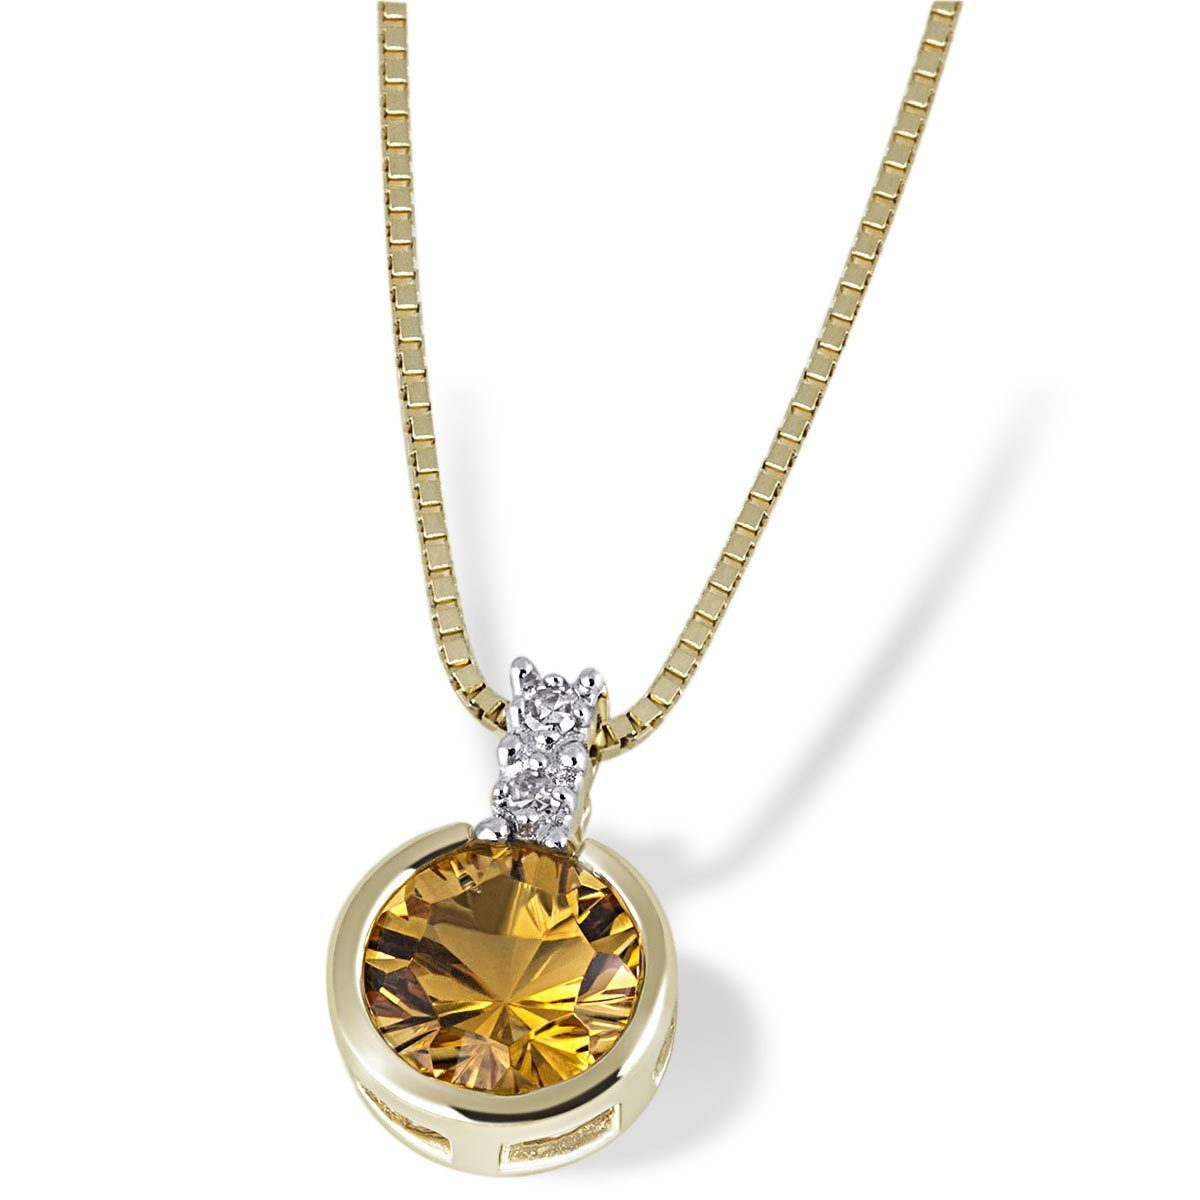 goldmaid Collier 585/- Gelbgold 1 Citrin 2 Diamanten 0,02 ct.